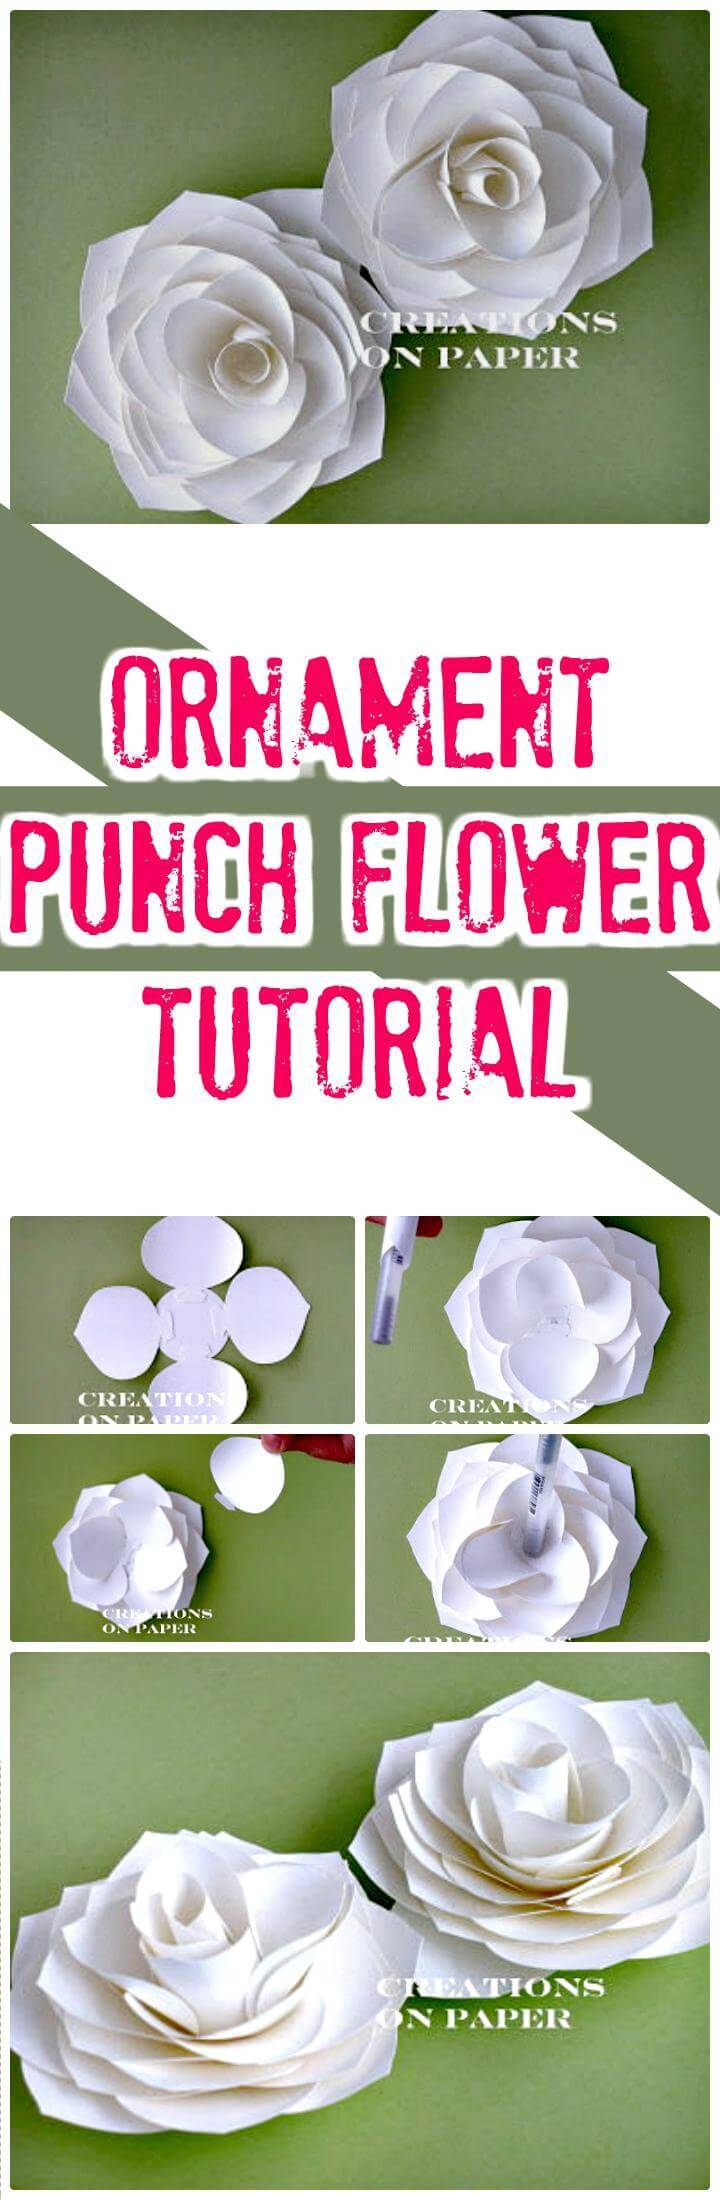 DIY ornament punch flower tutorial